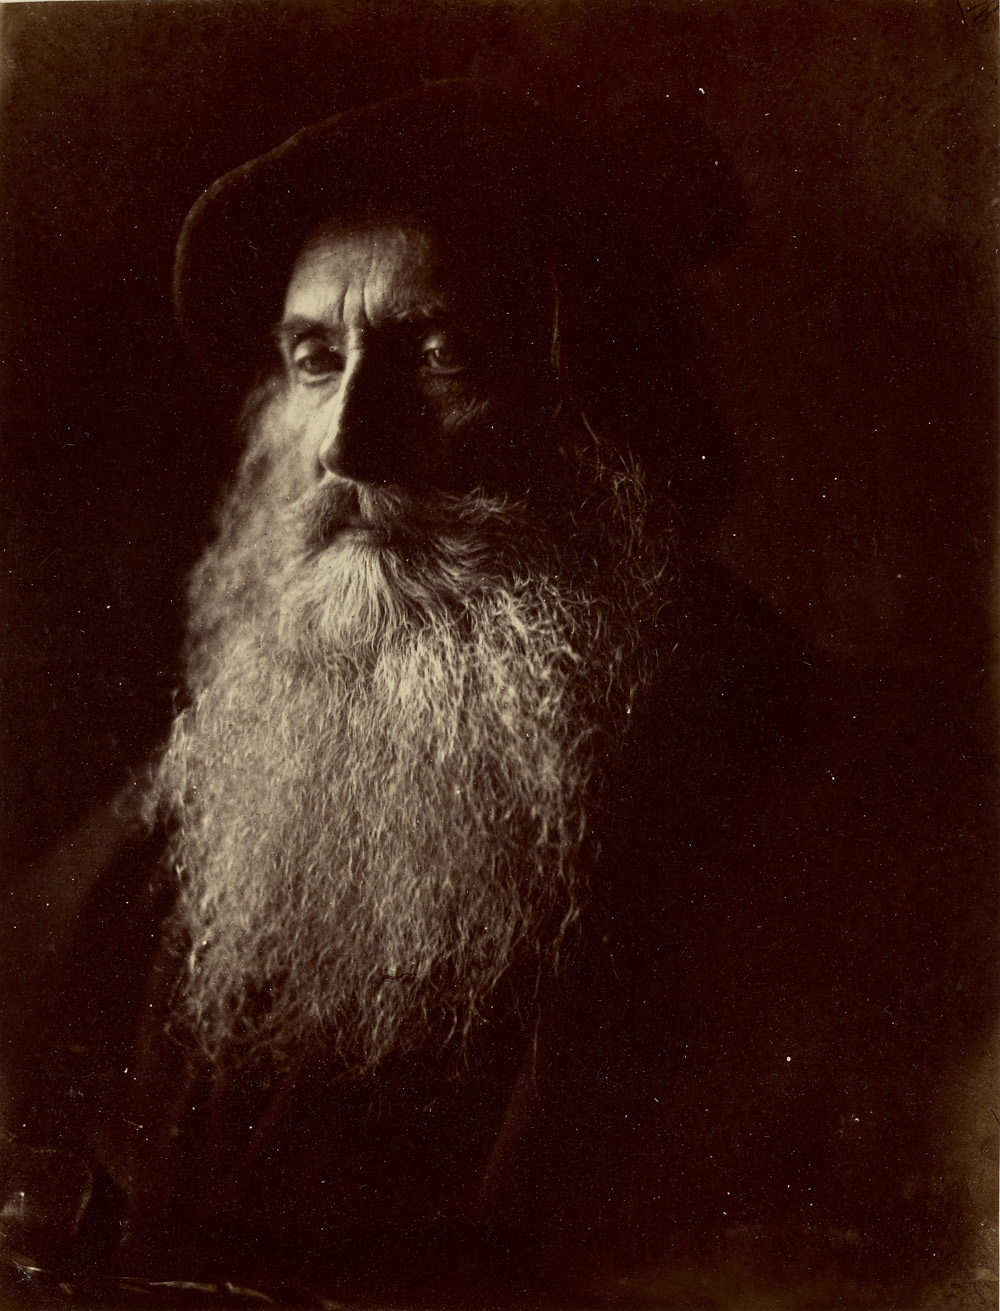 Julia Margaret Cameron (British, born India, 1815 - 1879)  Sir Henry Taylor (a Rembrandt),  1866, Albumen silver print 26.7 x 20 cm (10 1/2 x 7 7/8 in.) The J. Paul Getty Museum, Los Angeles